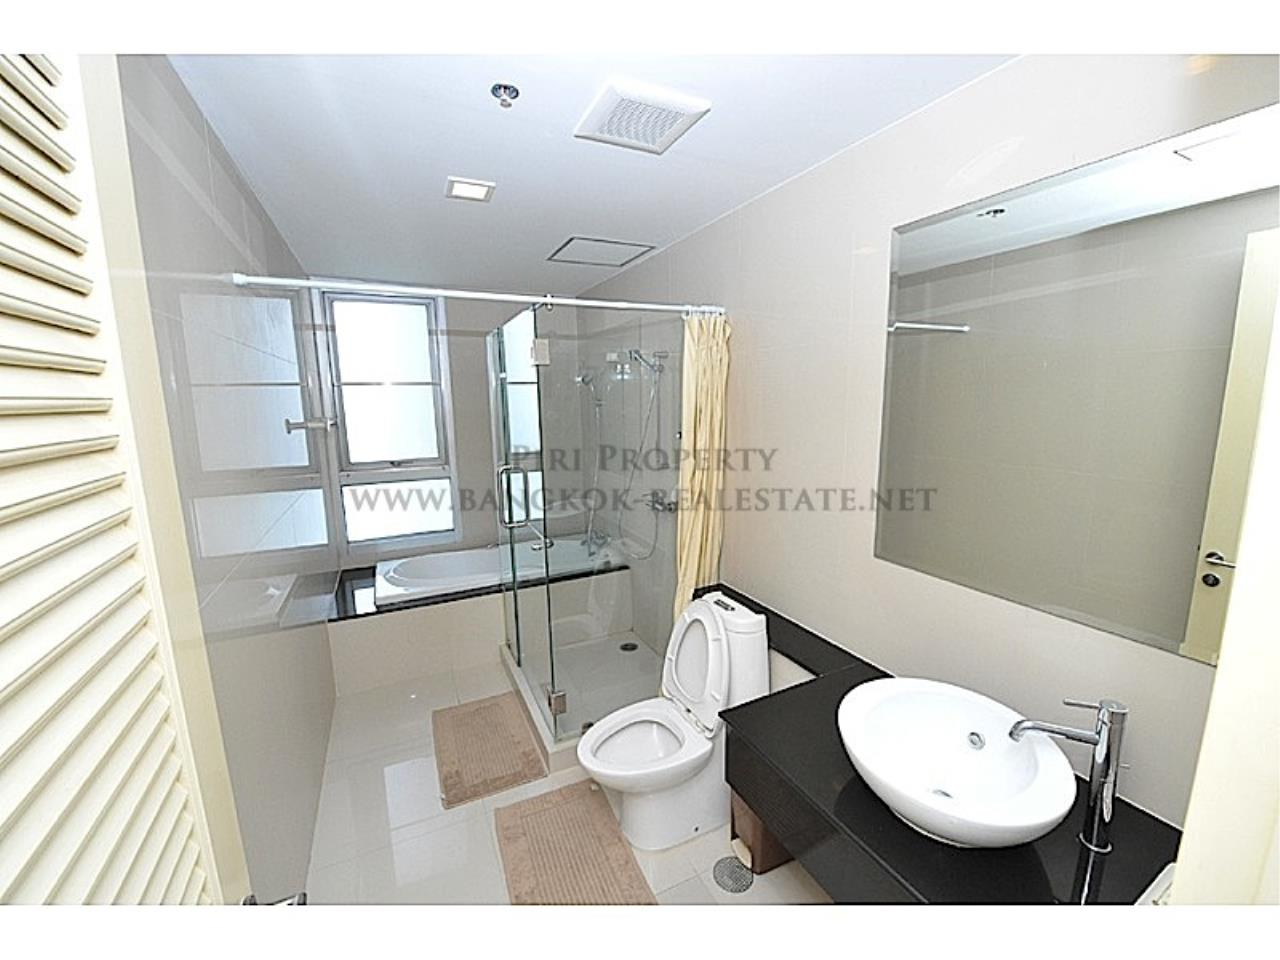 Piri Property Agency's Modern fully furnished two bedroom unit - Nusasiri Grand Condo 4